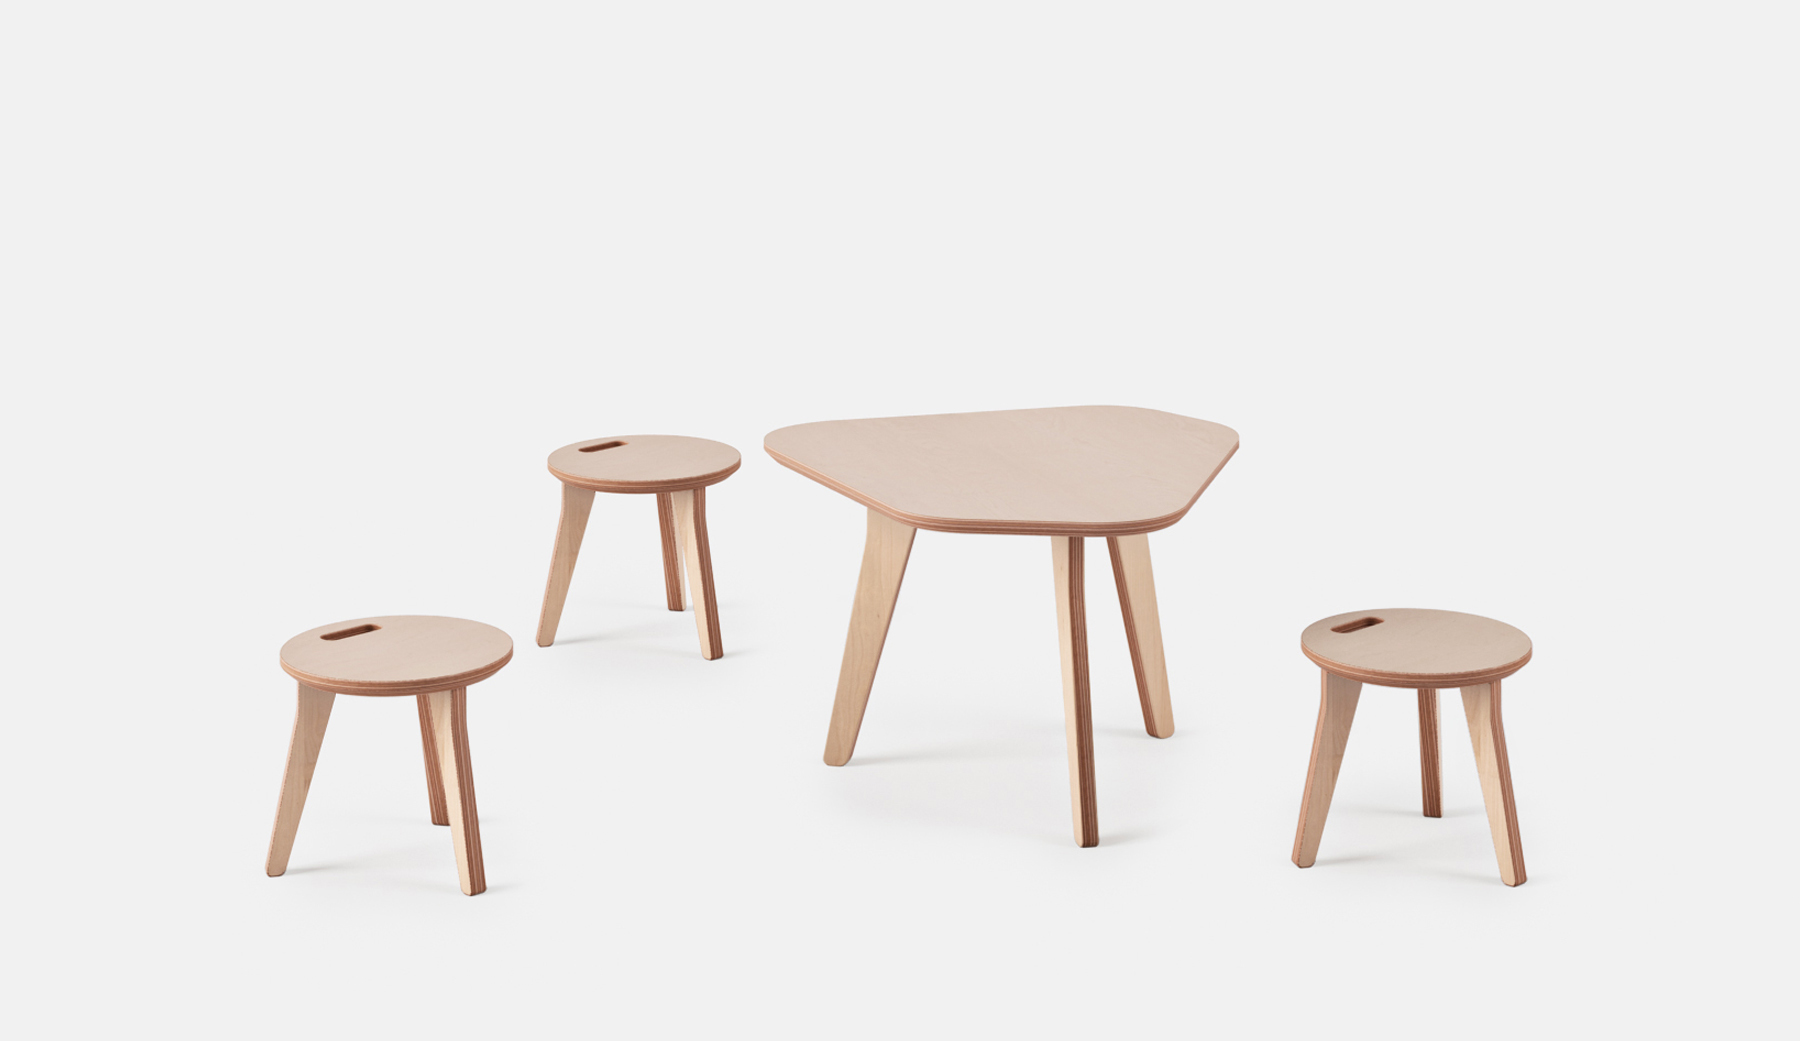 Peachy Opendesk Edie Set Caraccident5 Cool Chair Designs And Ideas Caraccident5Info